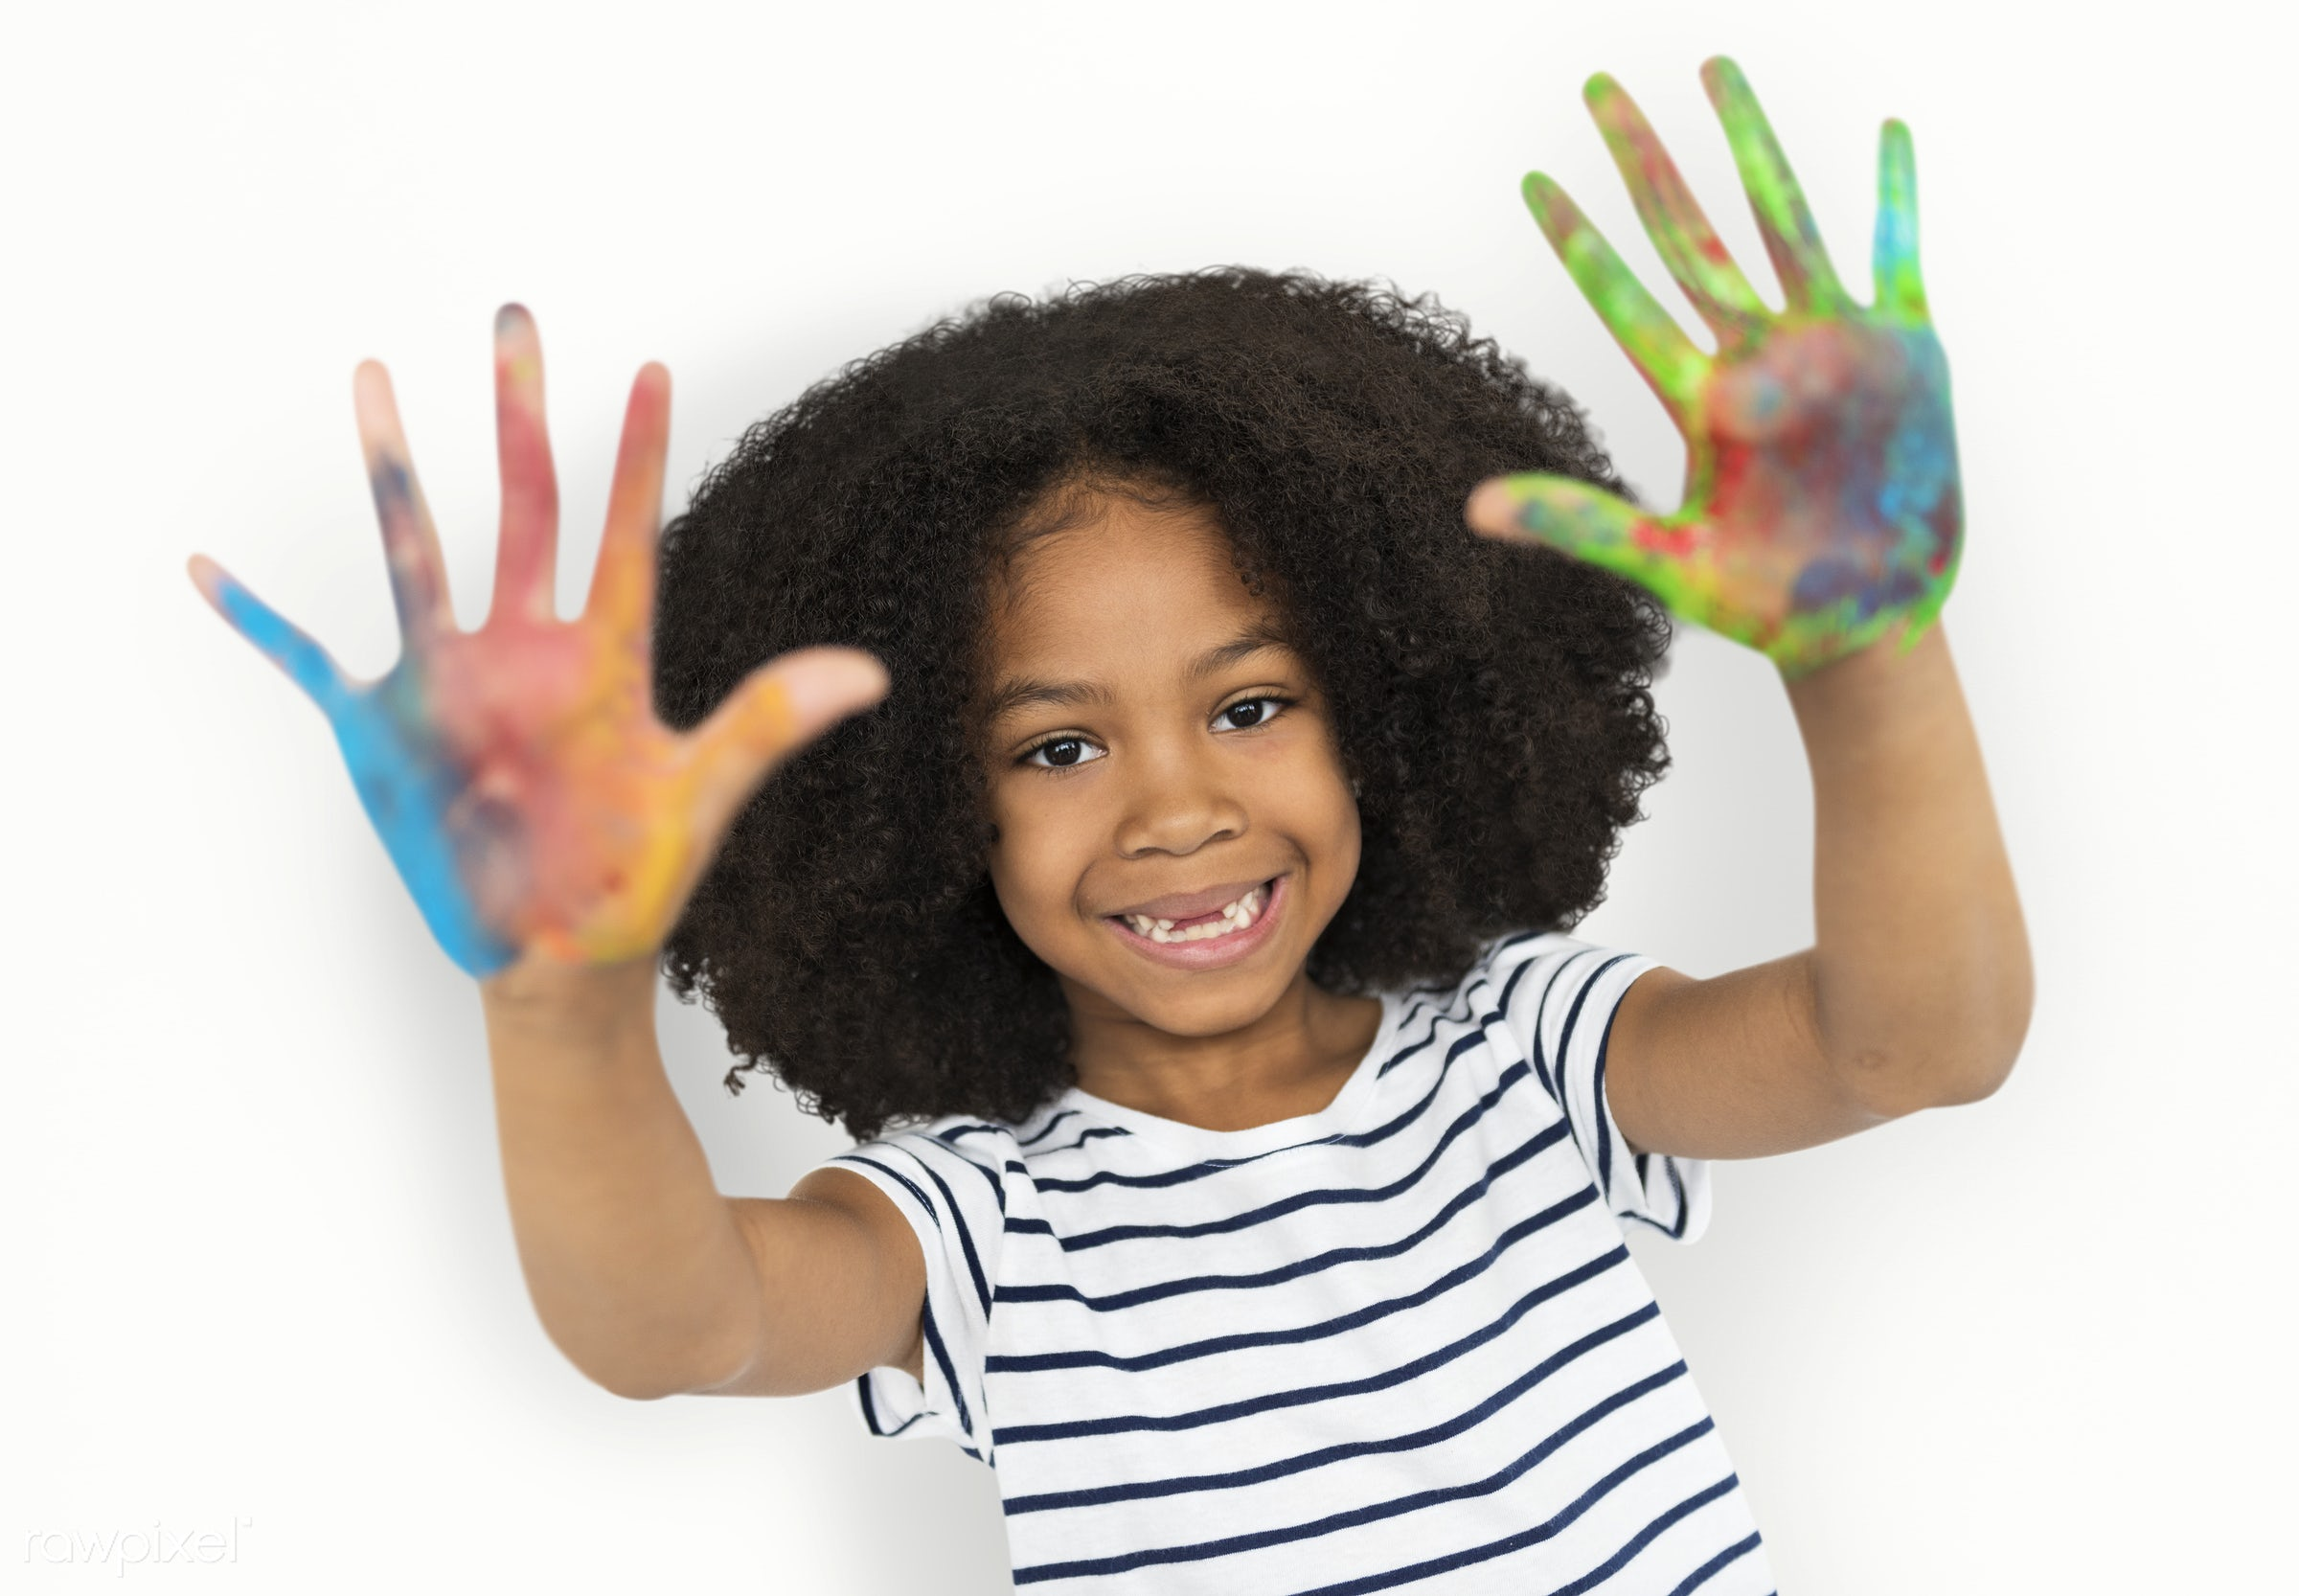 studio, expression, person, isolated on white, little, cute, people, painted hands, drawing, draw, child, girl, happy,...